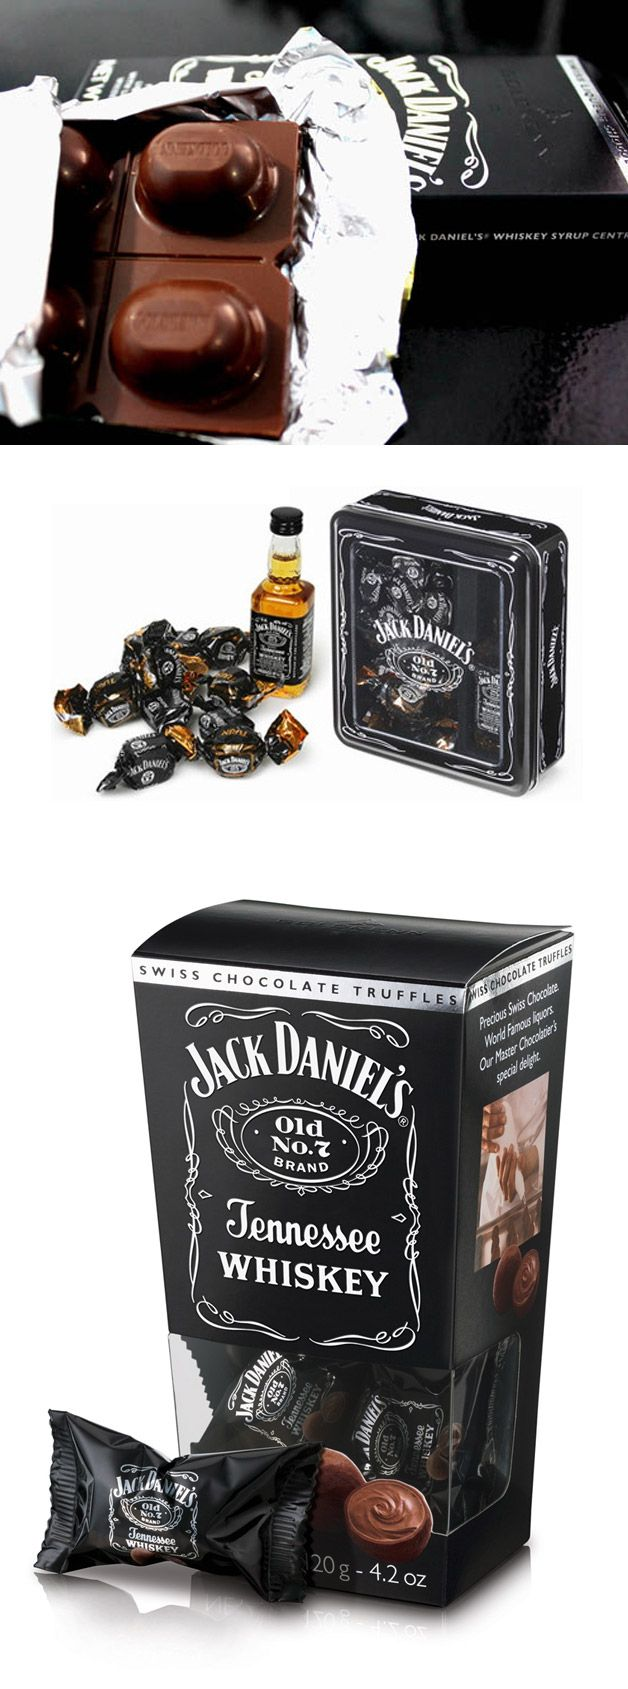 Simple ideas always the best.  Jack Daniels Chocolate! Mmmm chocolate PD